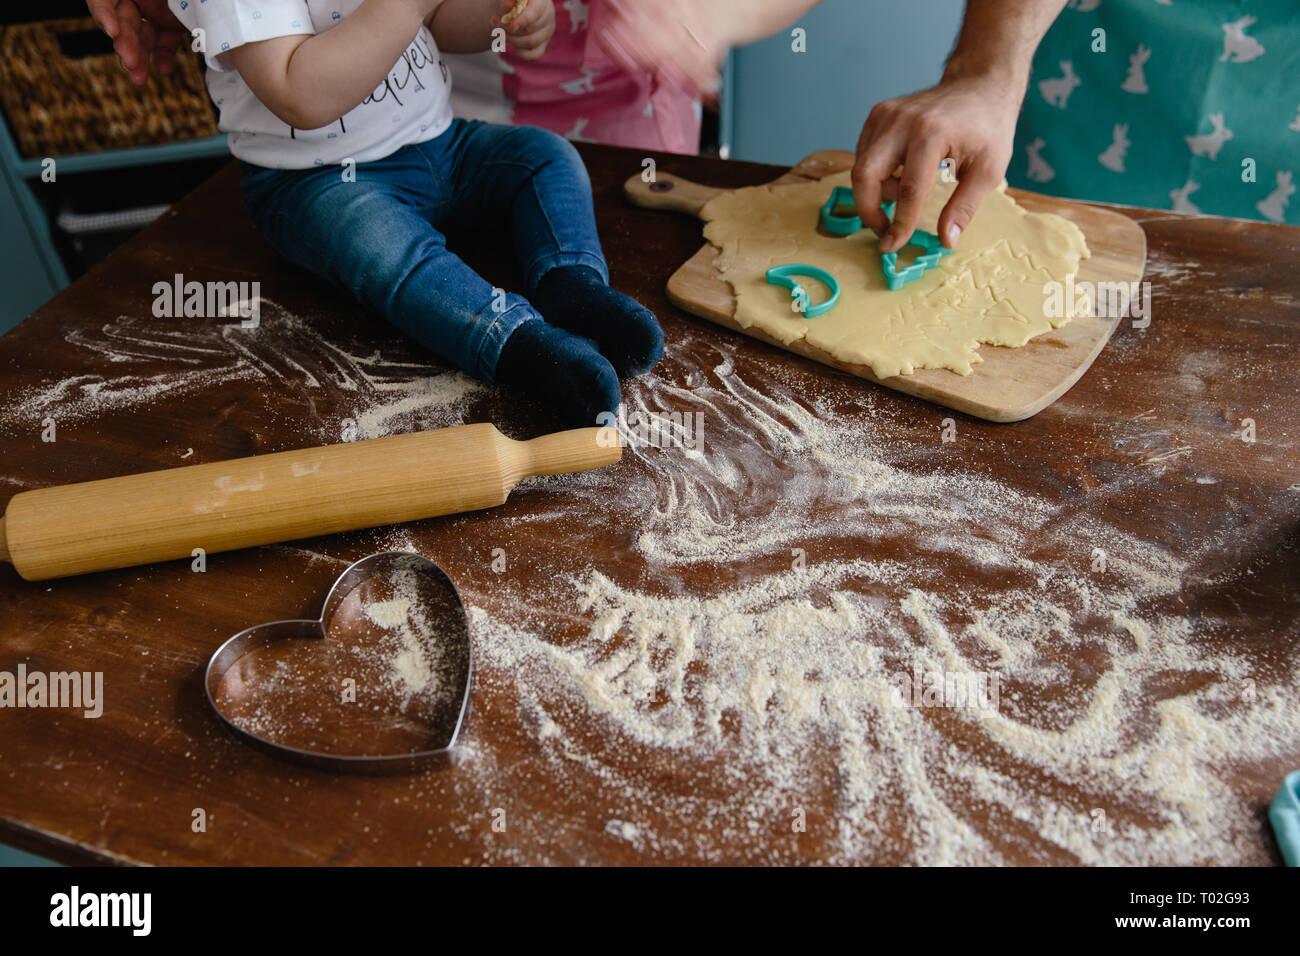 Little boy in jeans mixing flour in the kitchen on a table making some mess - Stock Image